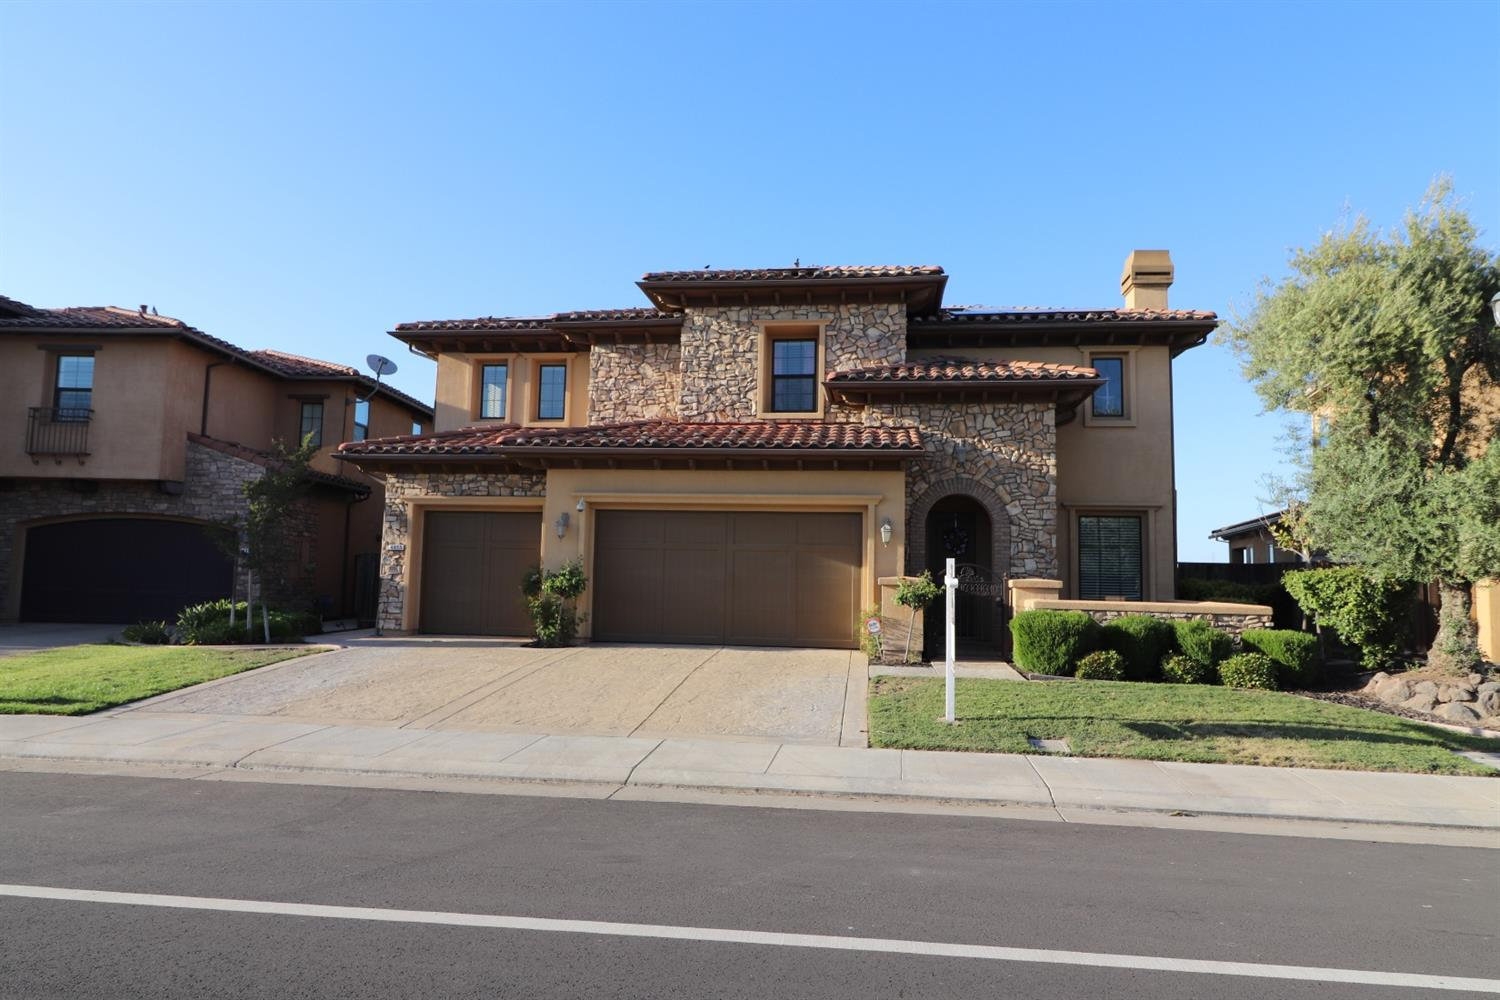 Photo of 4055 Castellina Way, Manteca, CA 95337